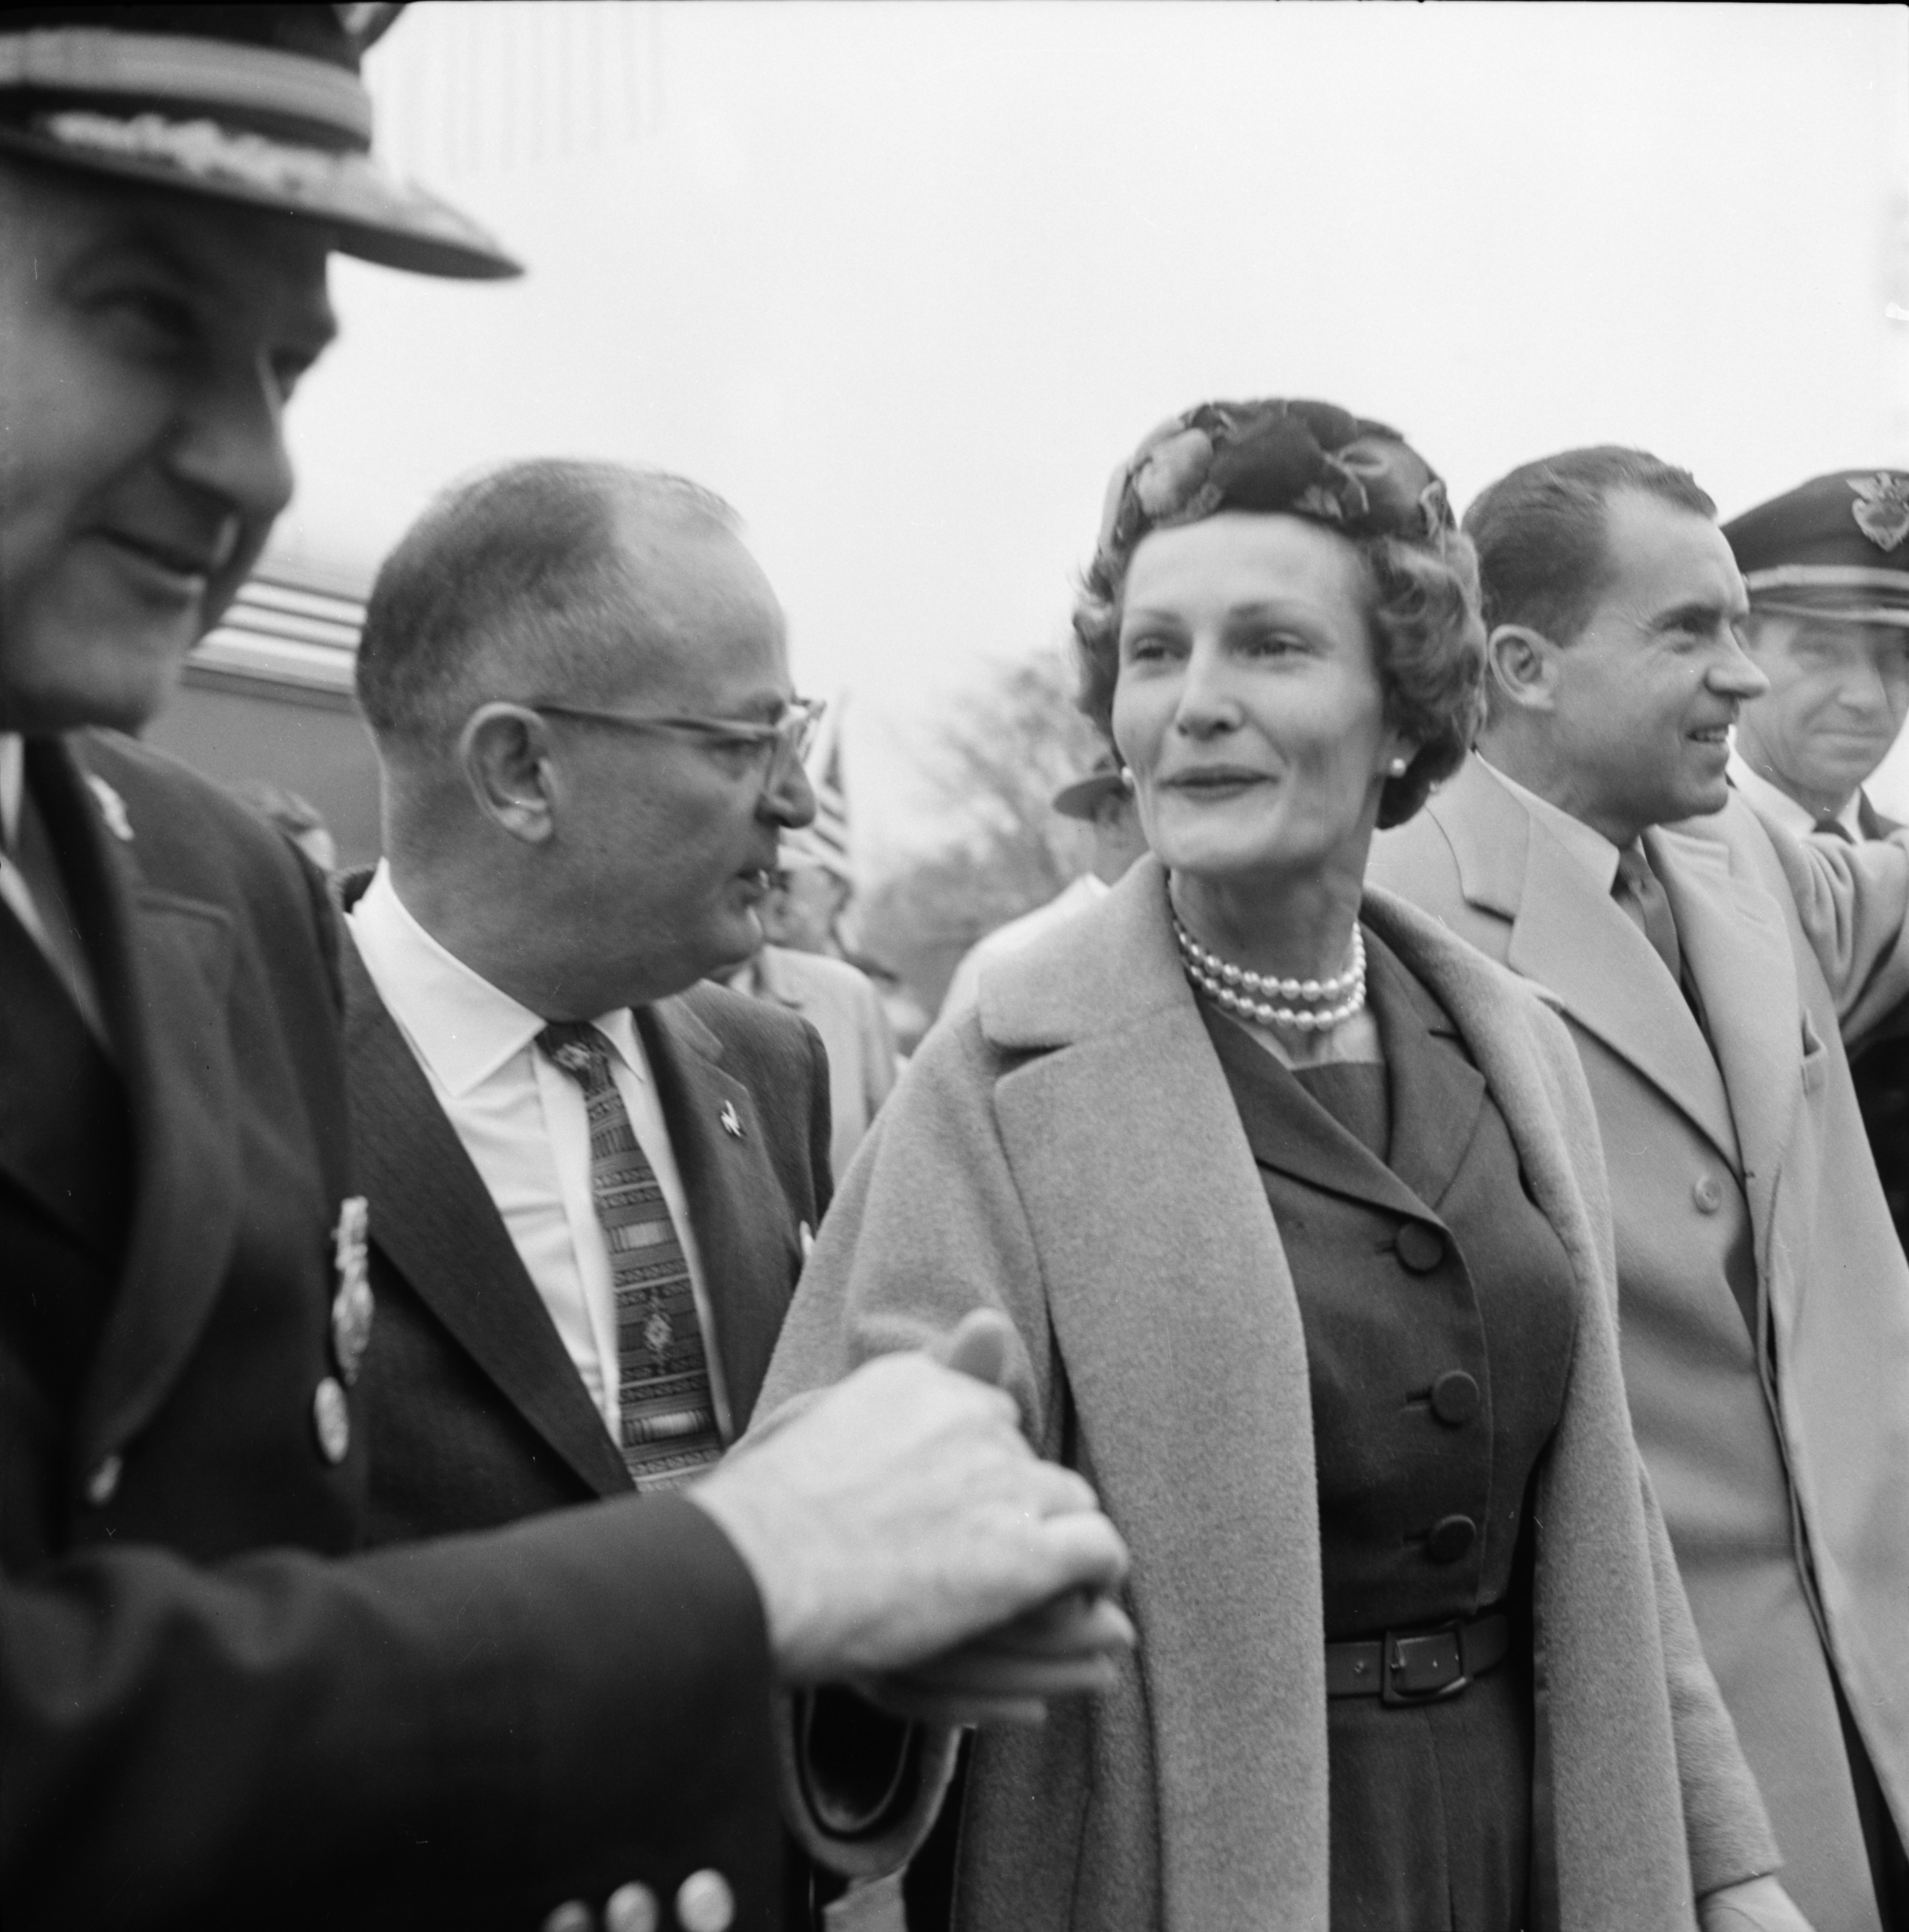 Pat Nixon during Ann Arbor visit, October 27, 1960 image